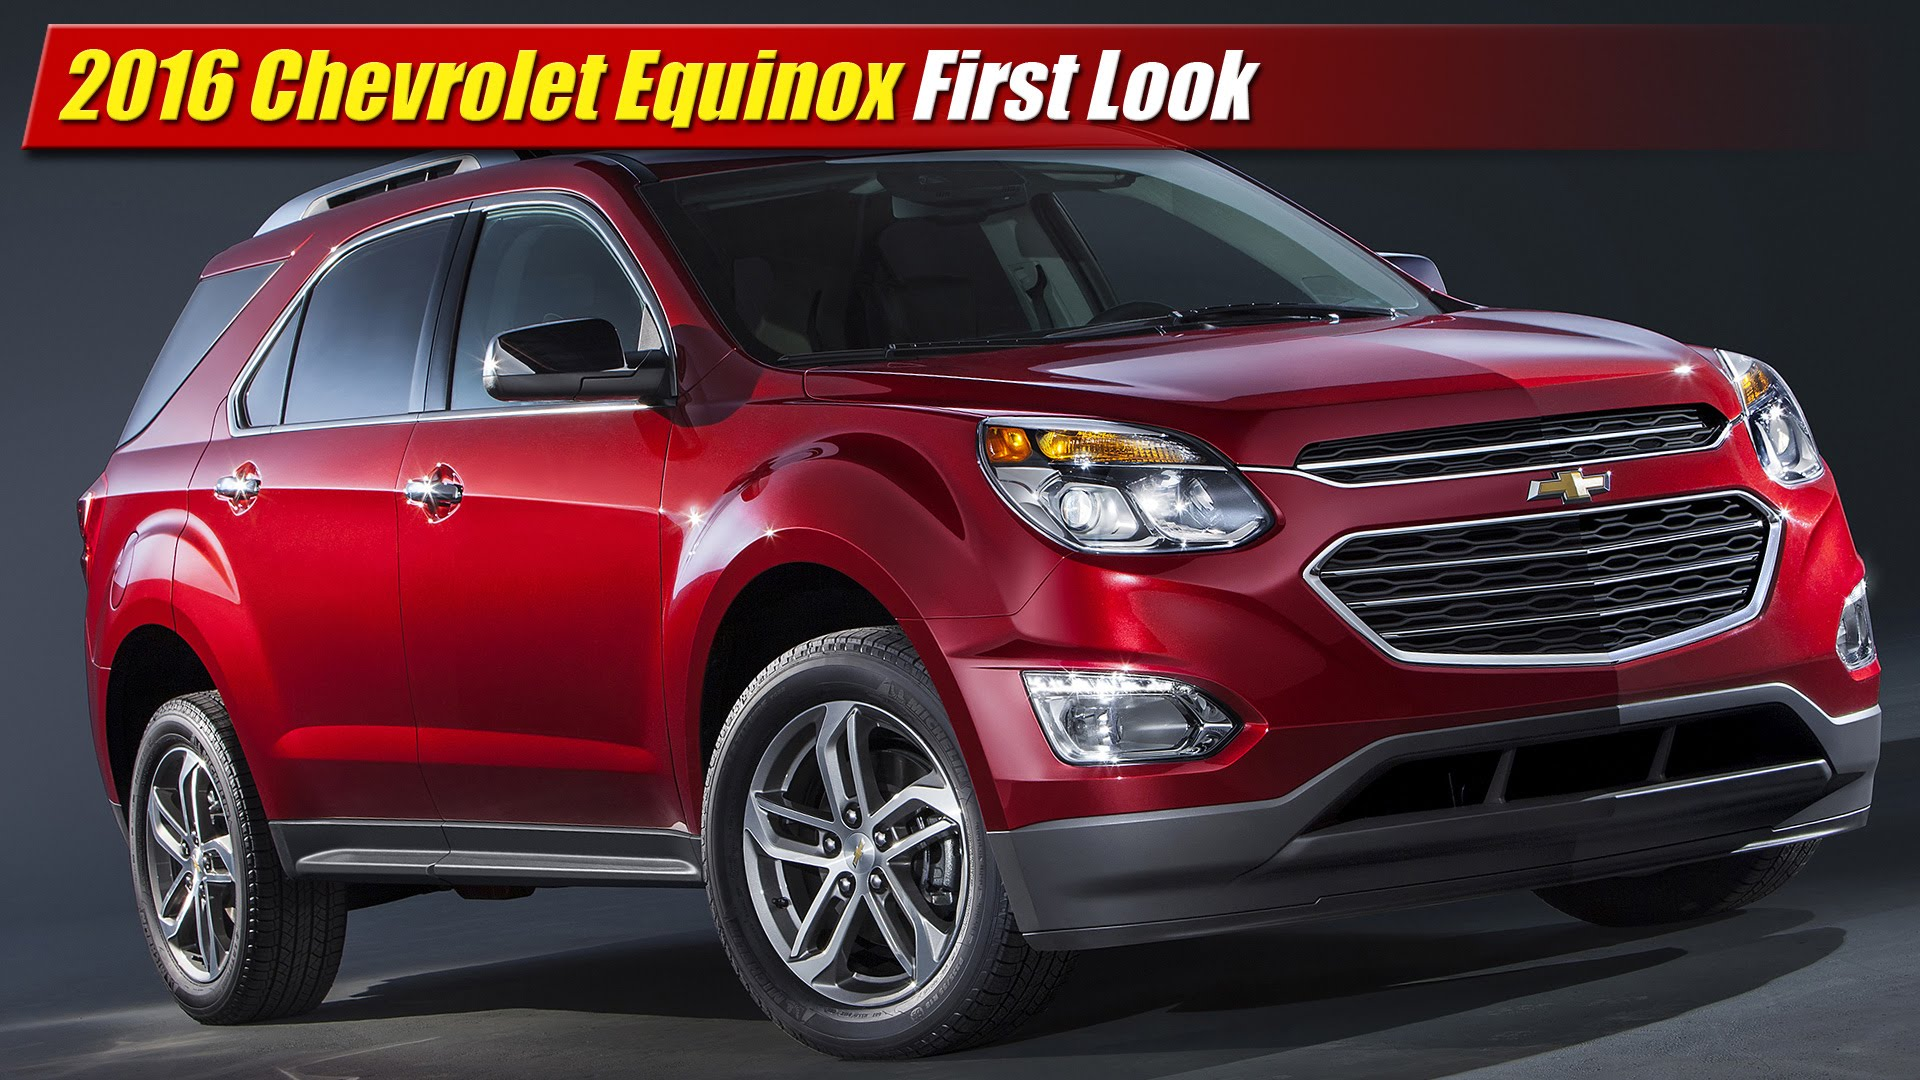 Brilliant First Look 2016 Chevrolet Equinox  TestDrivenTV